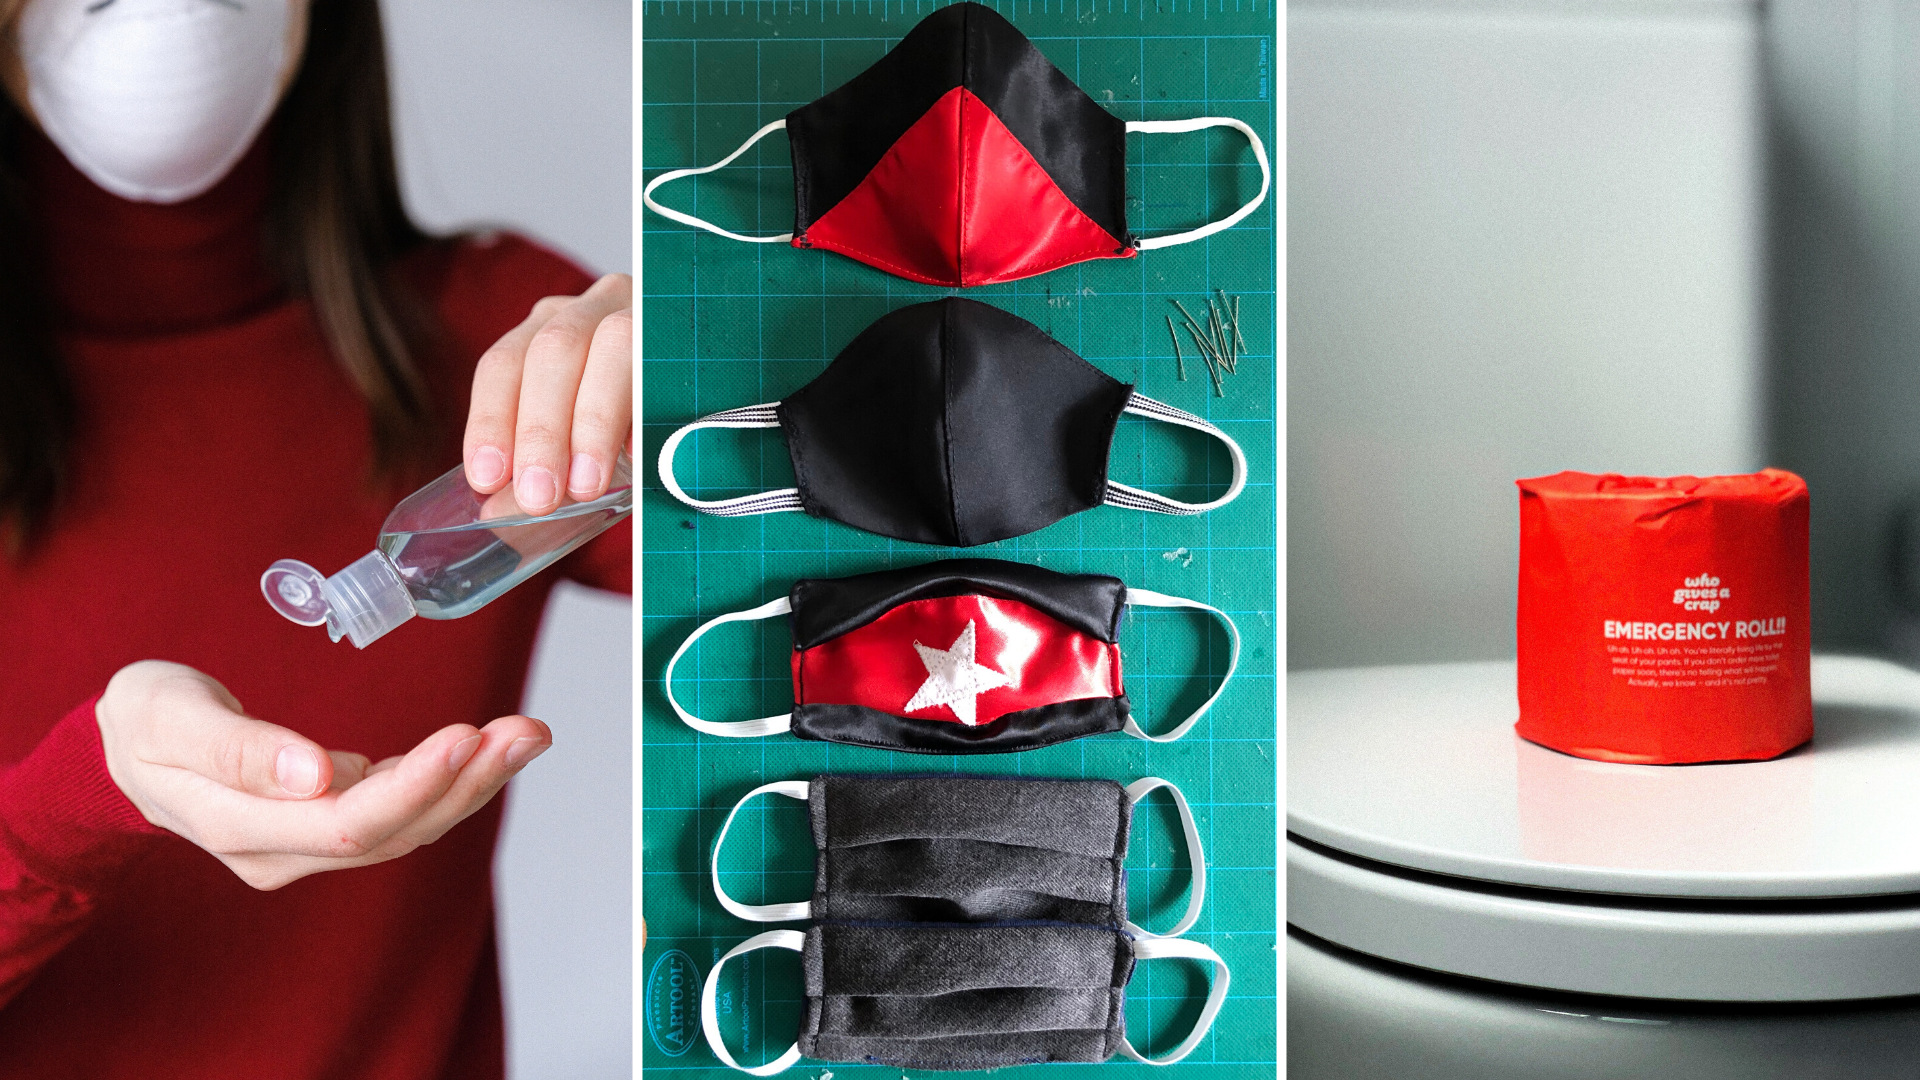 All Your Google 'DIY How To' Questions Answered, From Masks to Toilet Paper